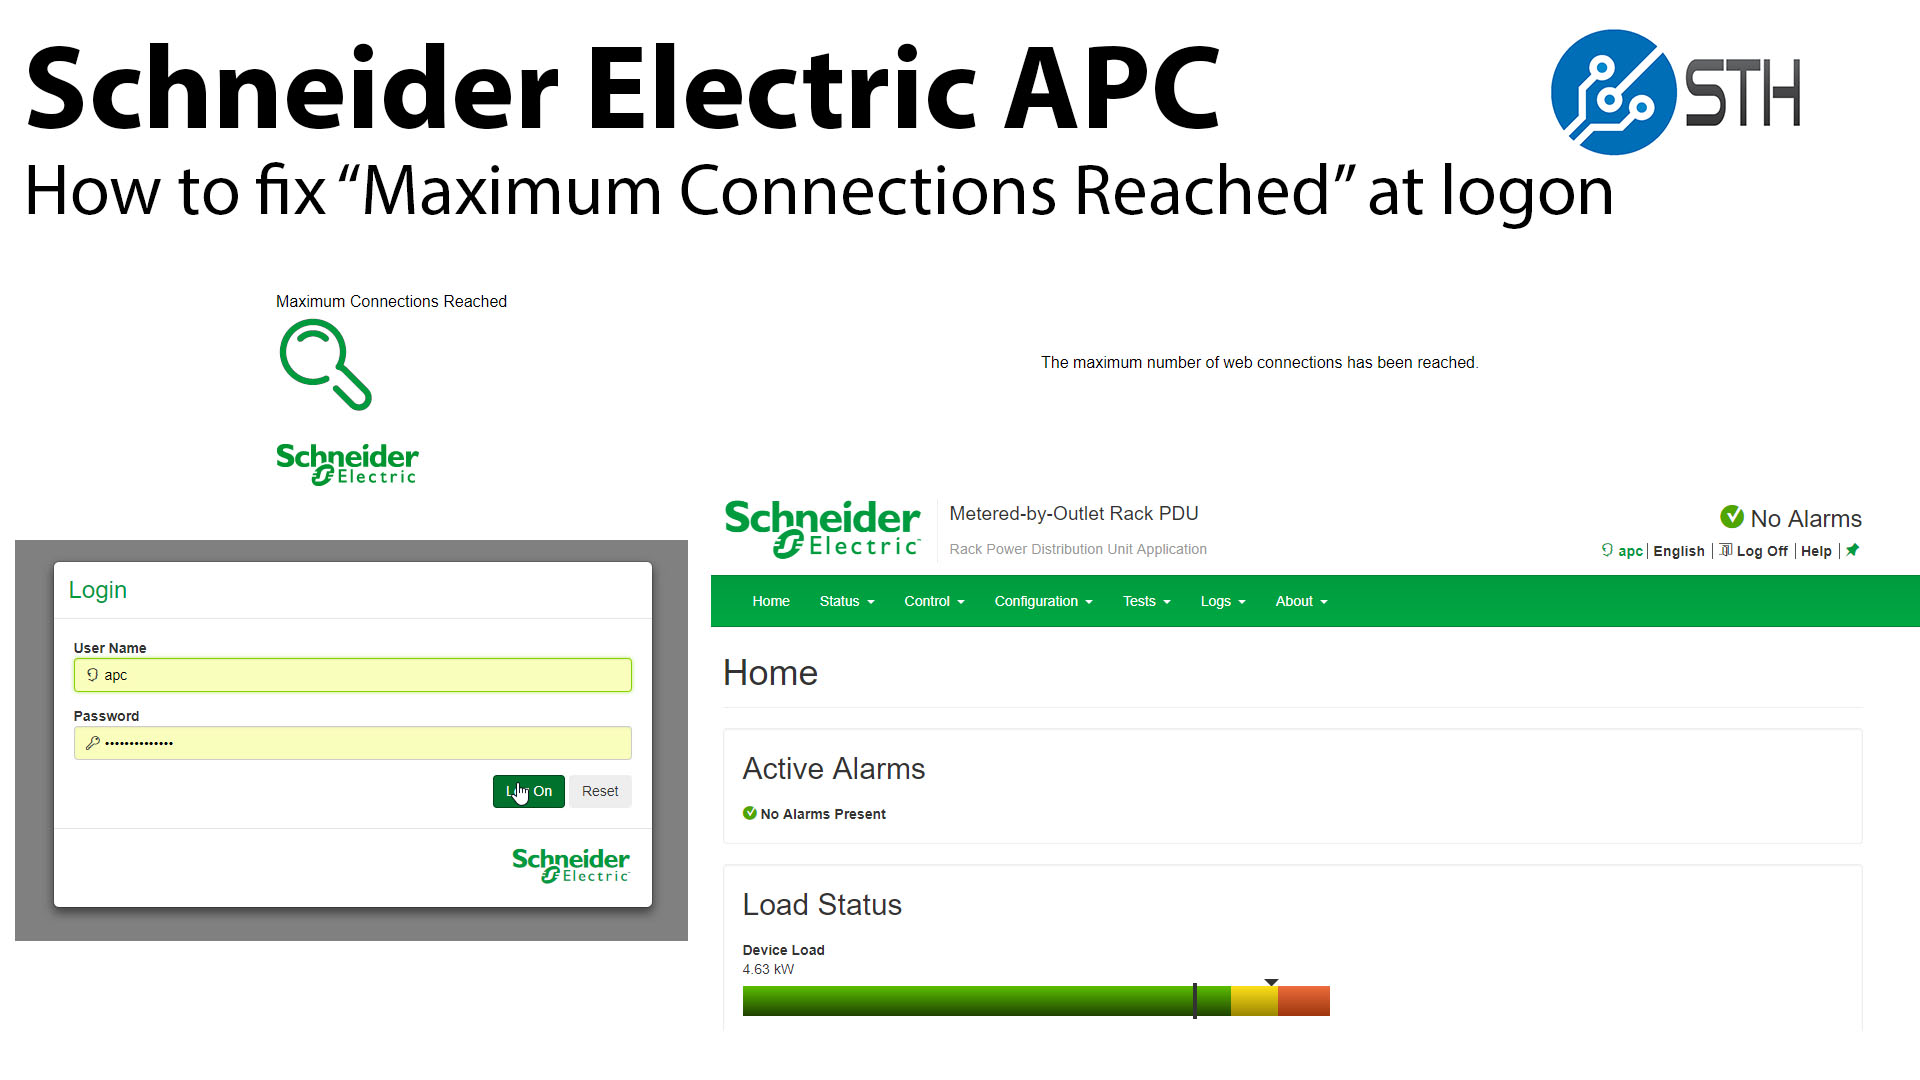 How to Fix Schneider Electric APC Maximum Connections Reached